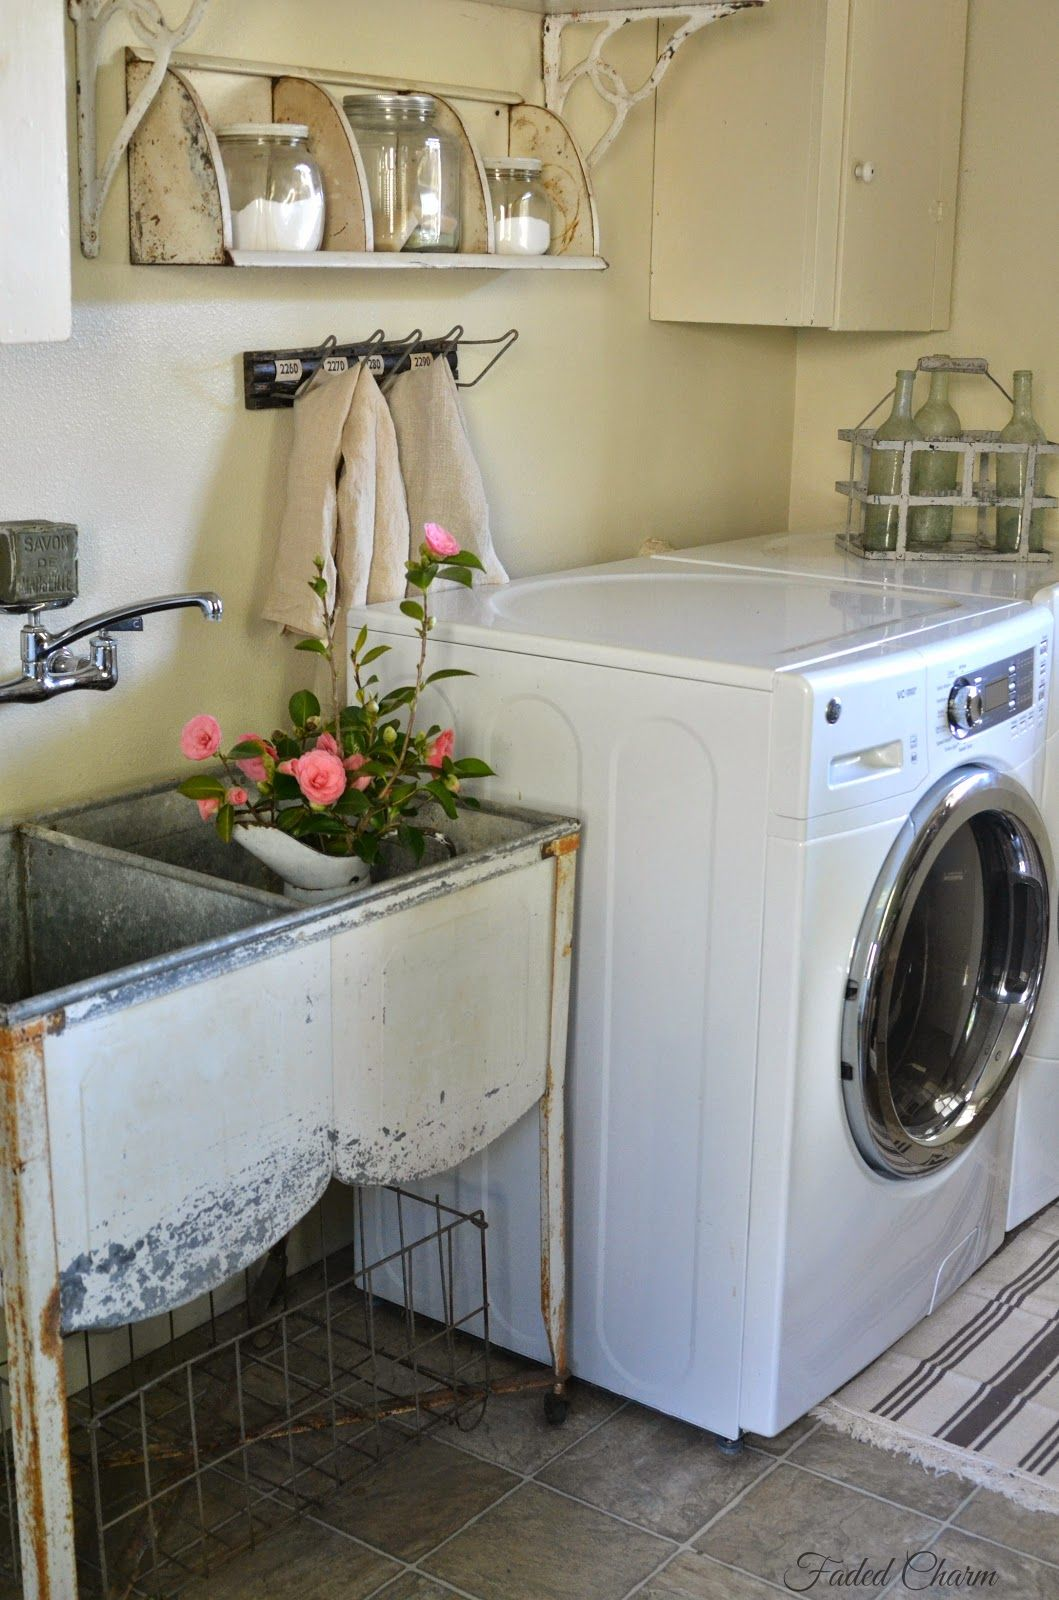 Vintage Laundry Room Pictures Laundry Room Essentials~ Faded*charm  Vintage Laundry Laundry